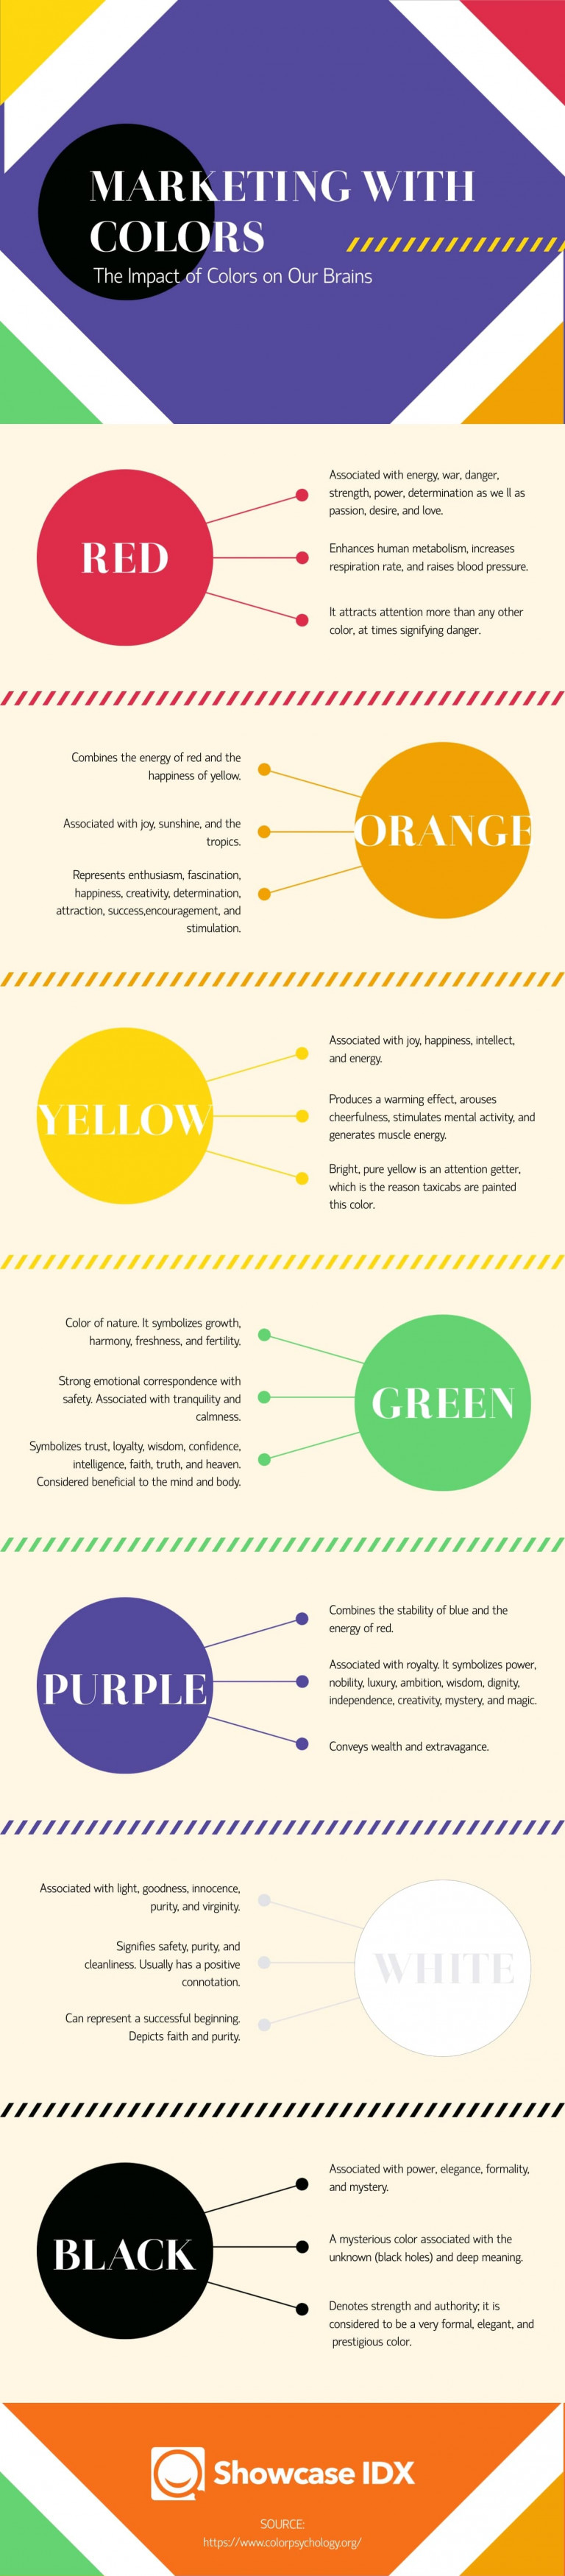 Infographic-Marketing-Colors-The-Impact-of-Colors-on-Our-Brains